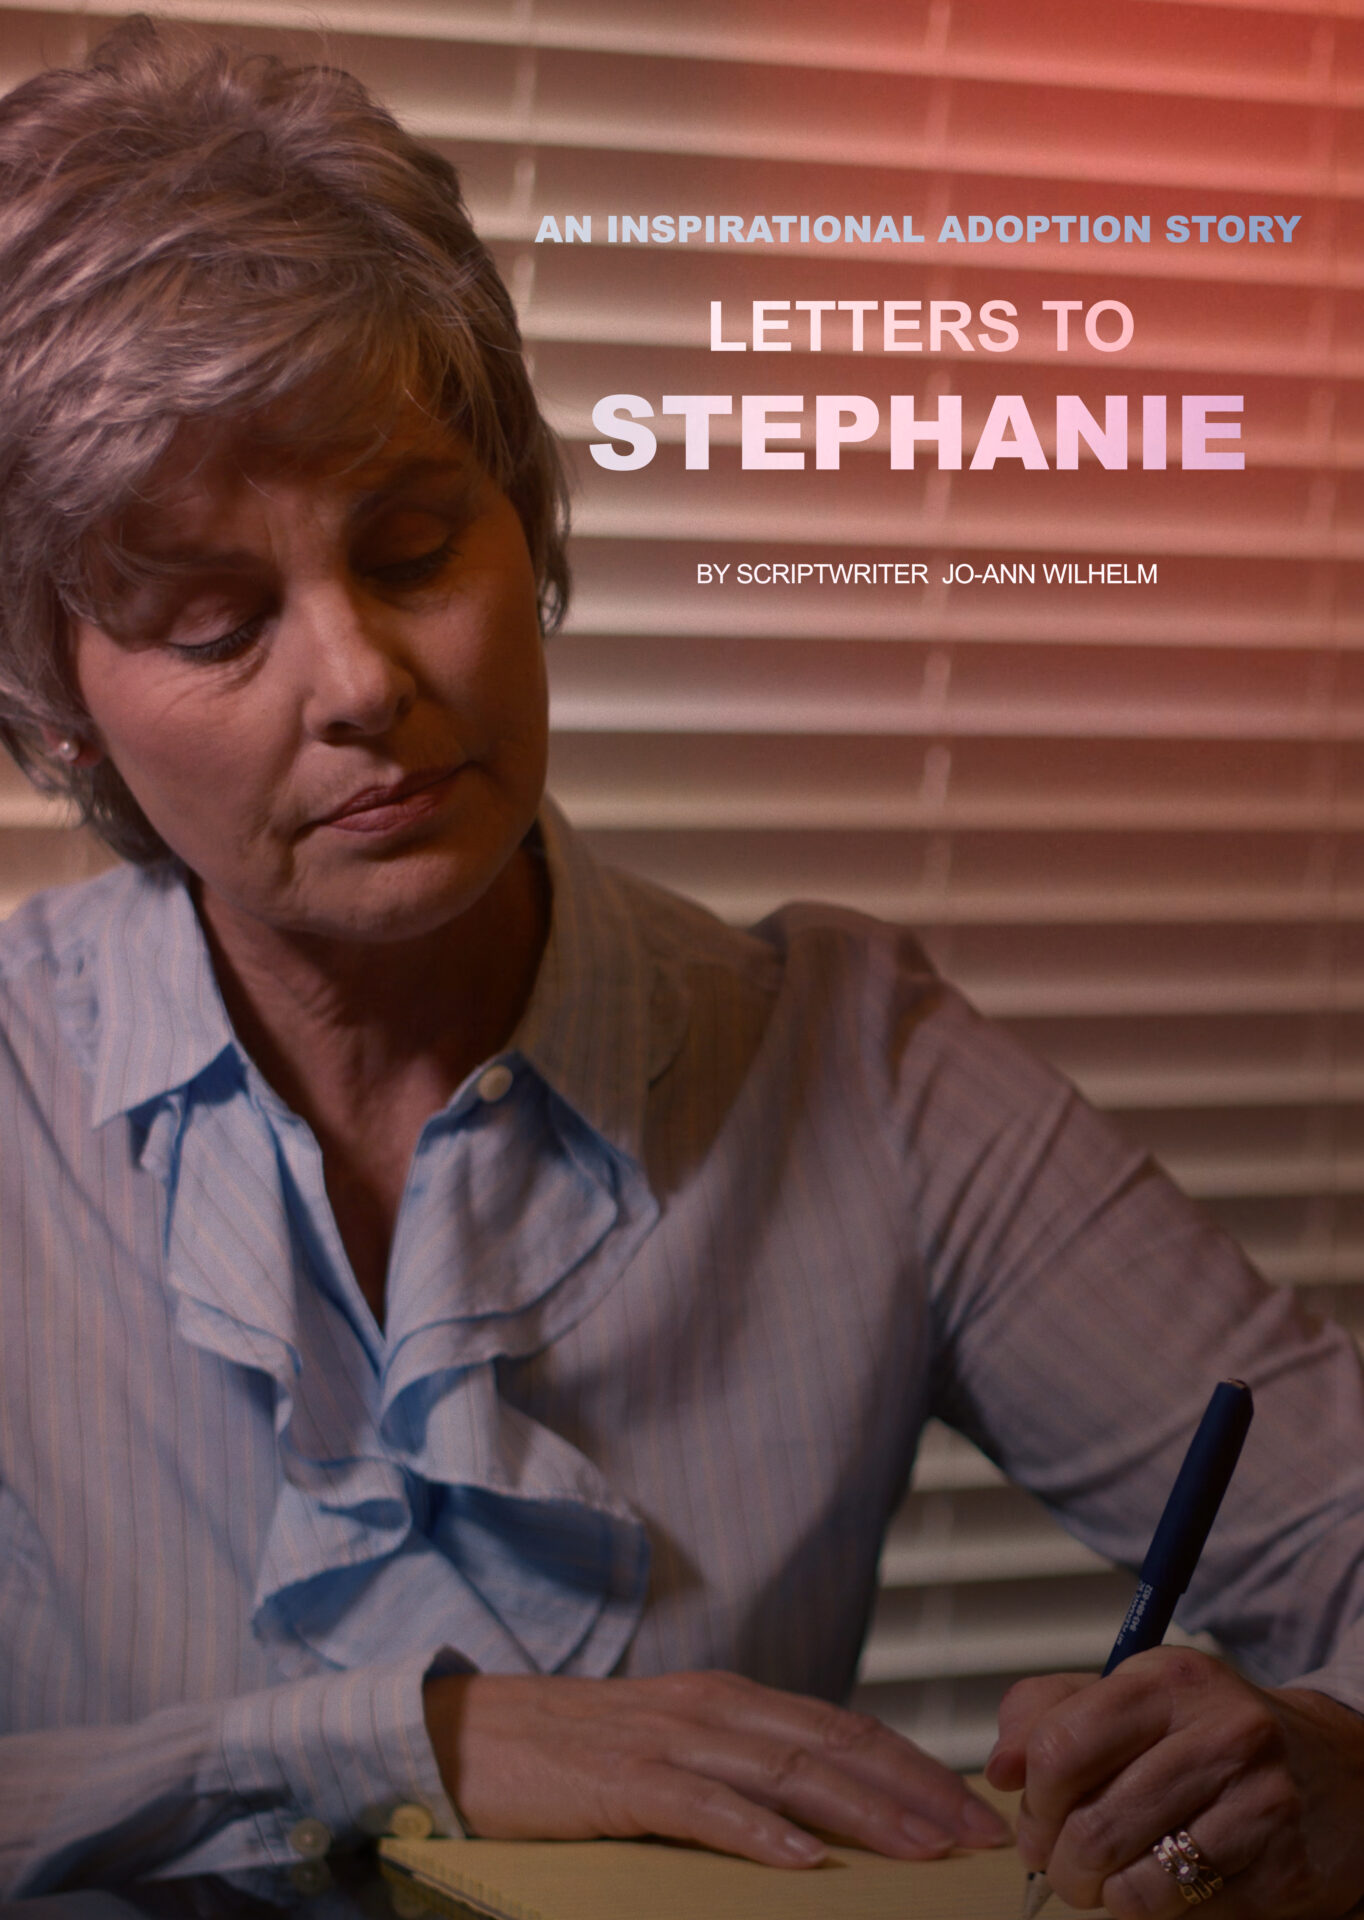 LETTERS TO STEPHANIE